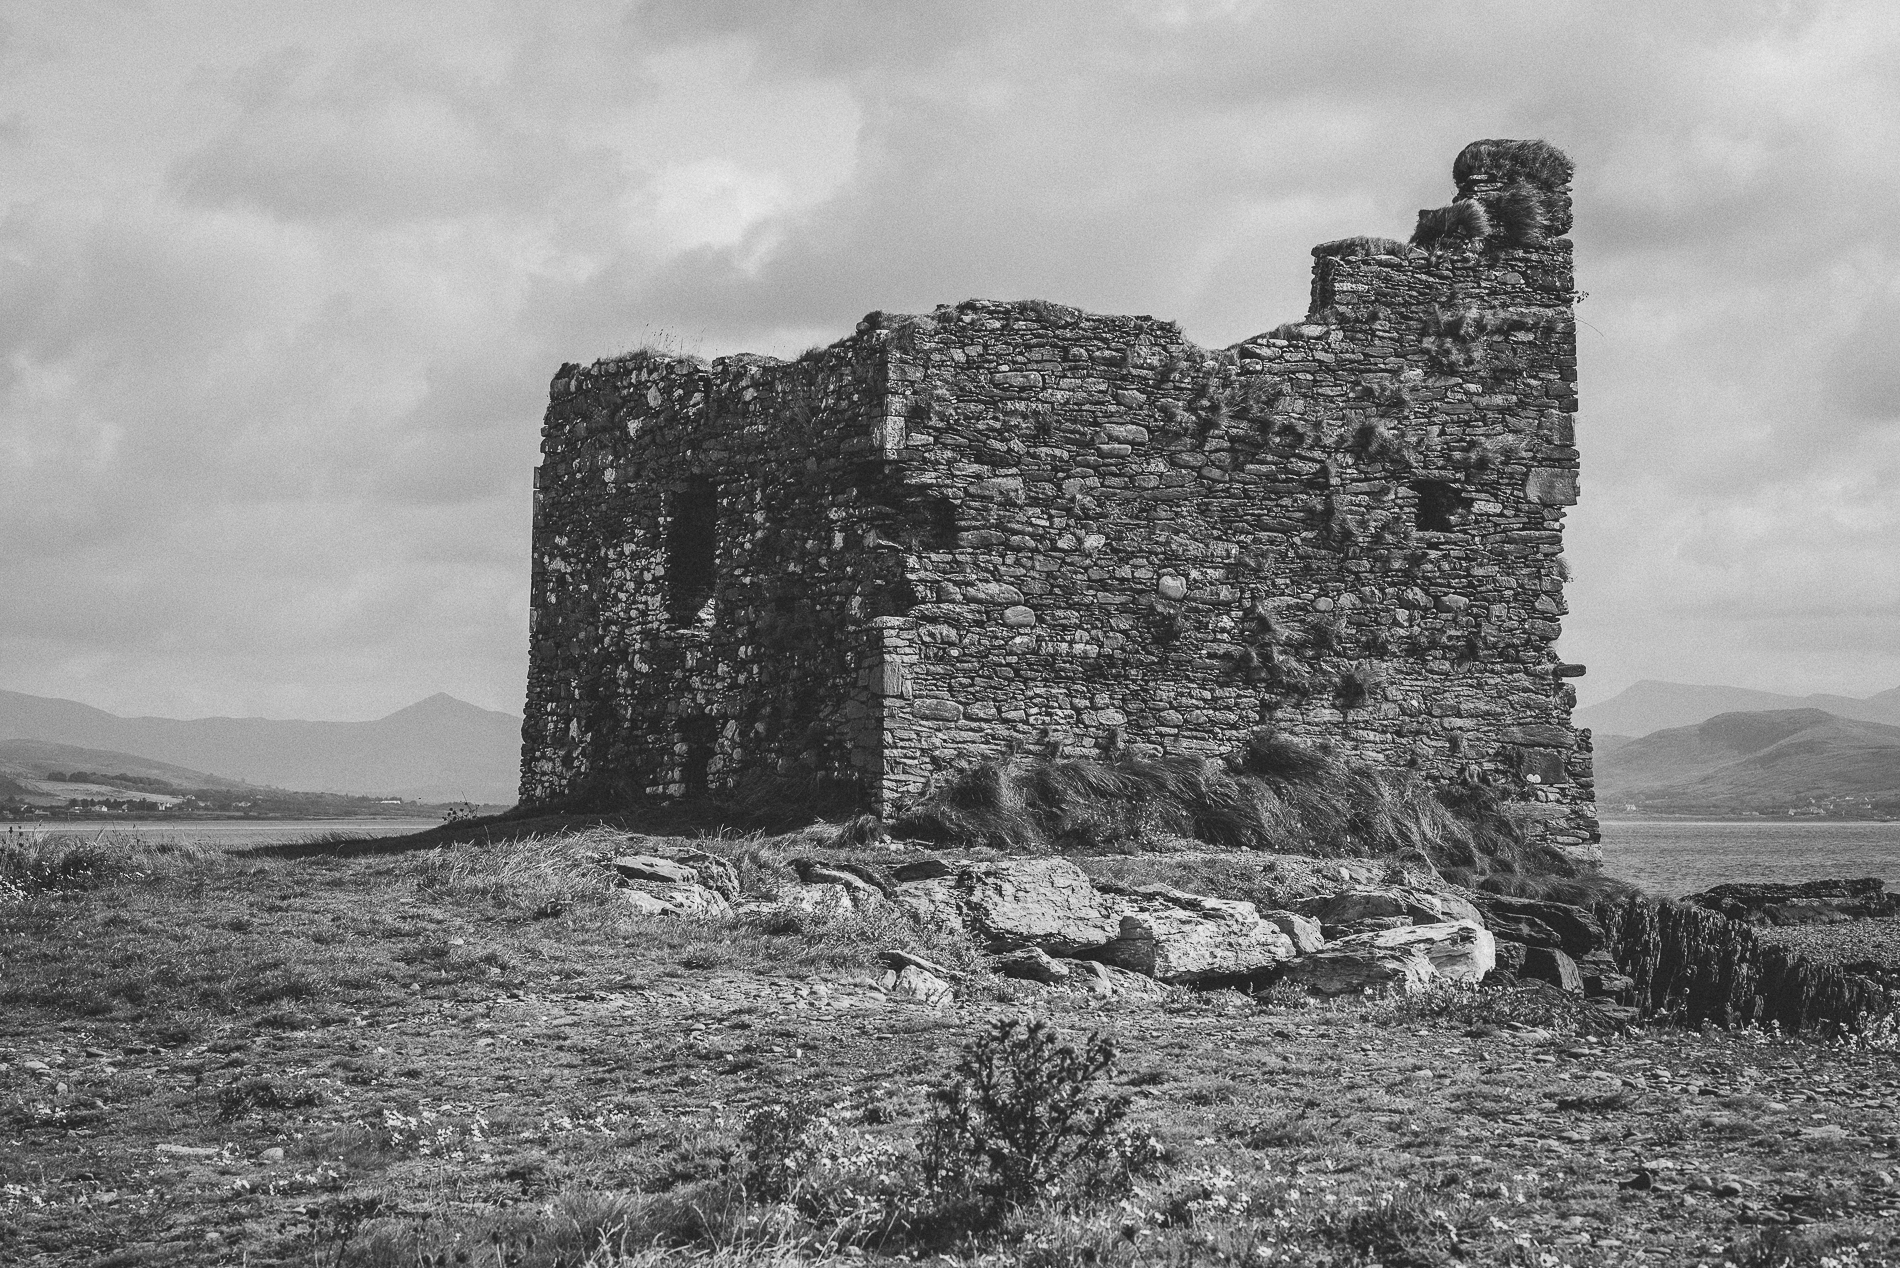 Ballinskelligs Castle, Ireland